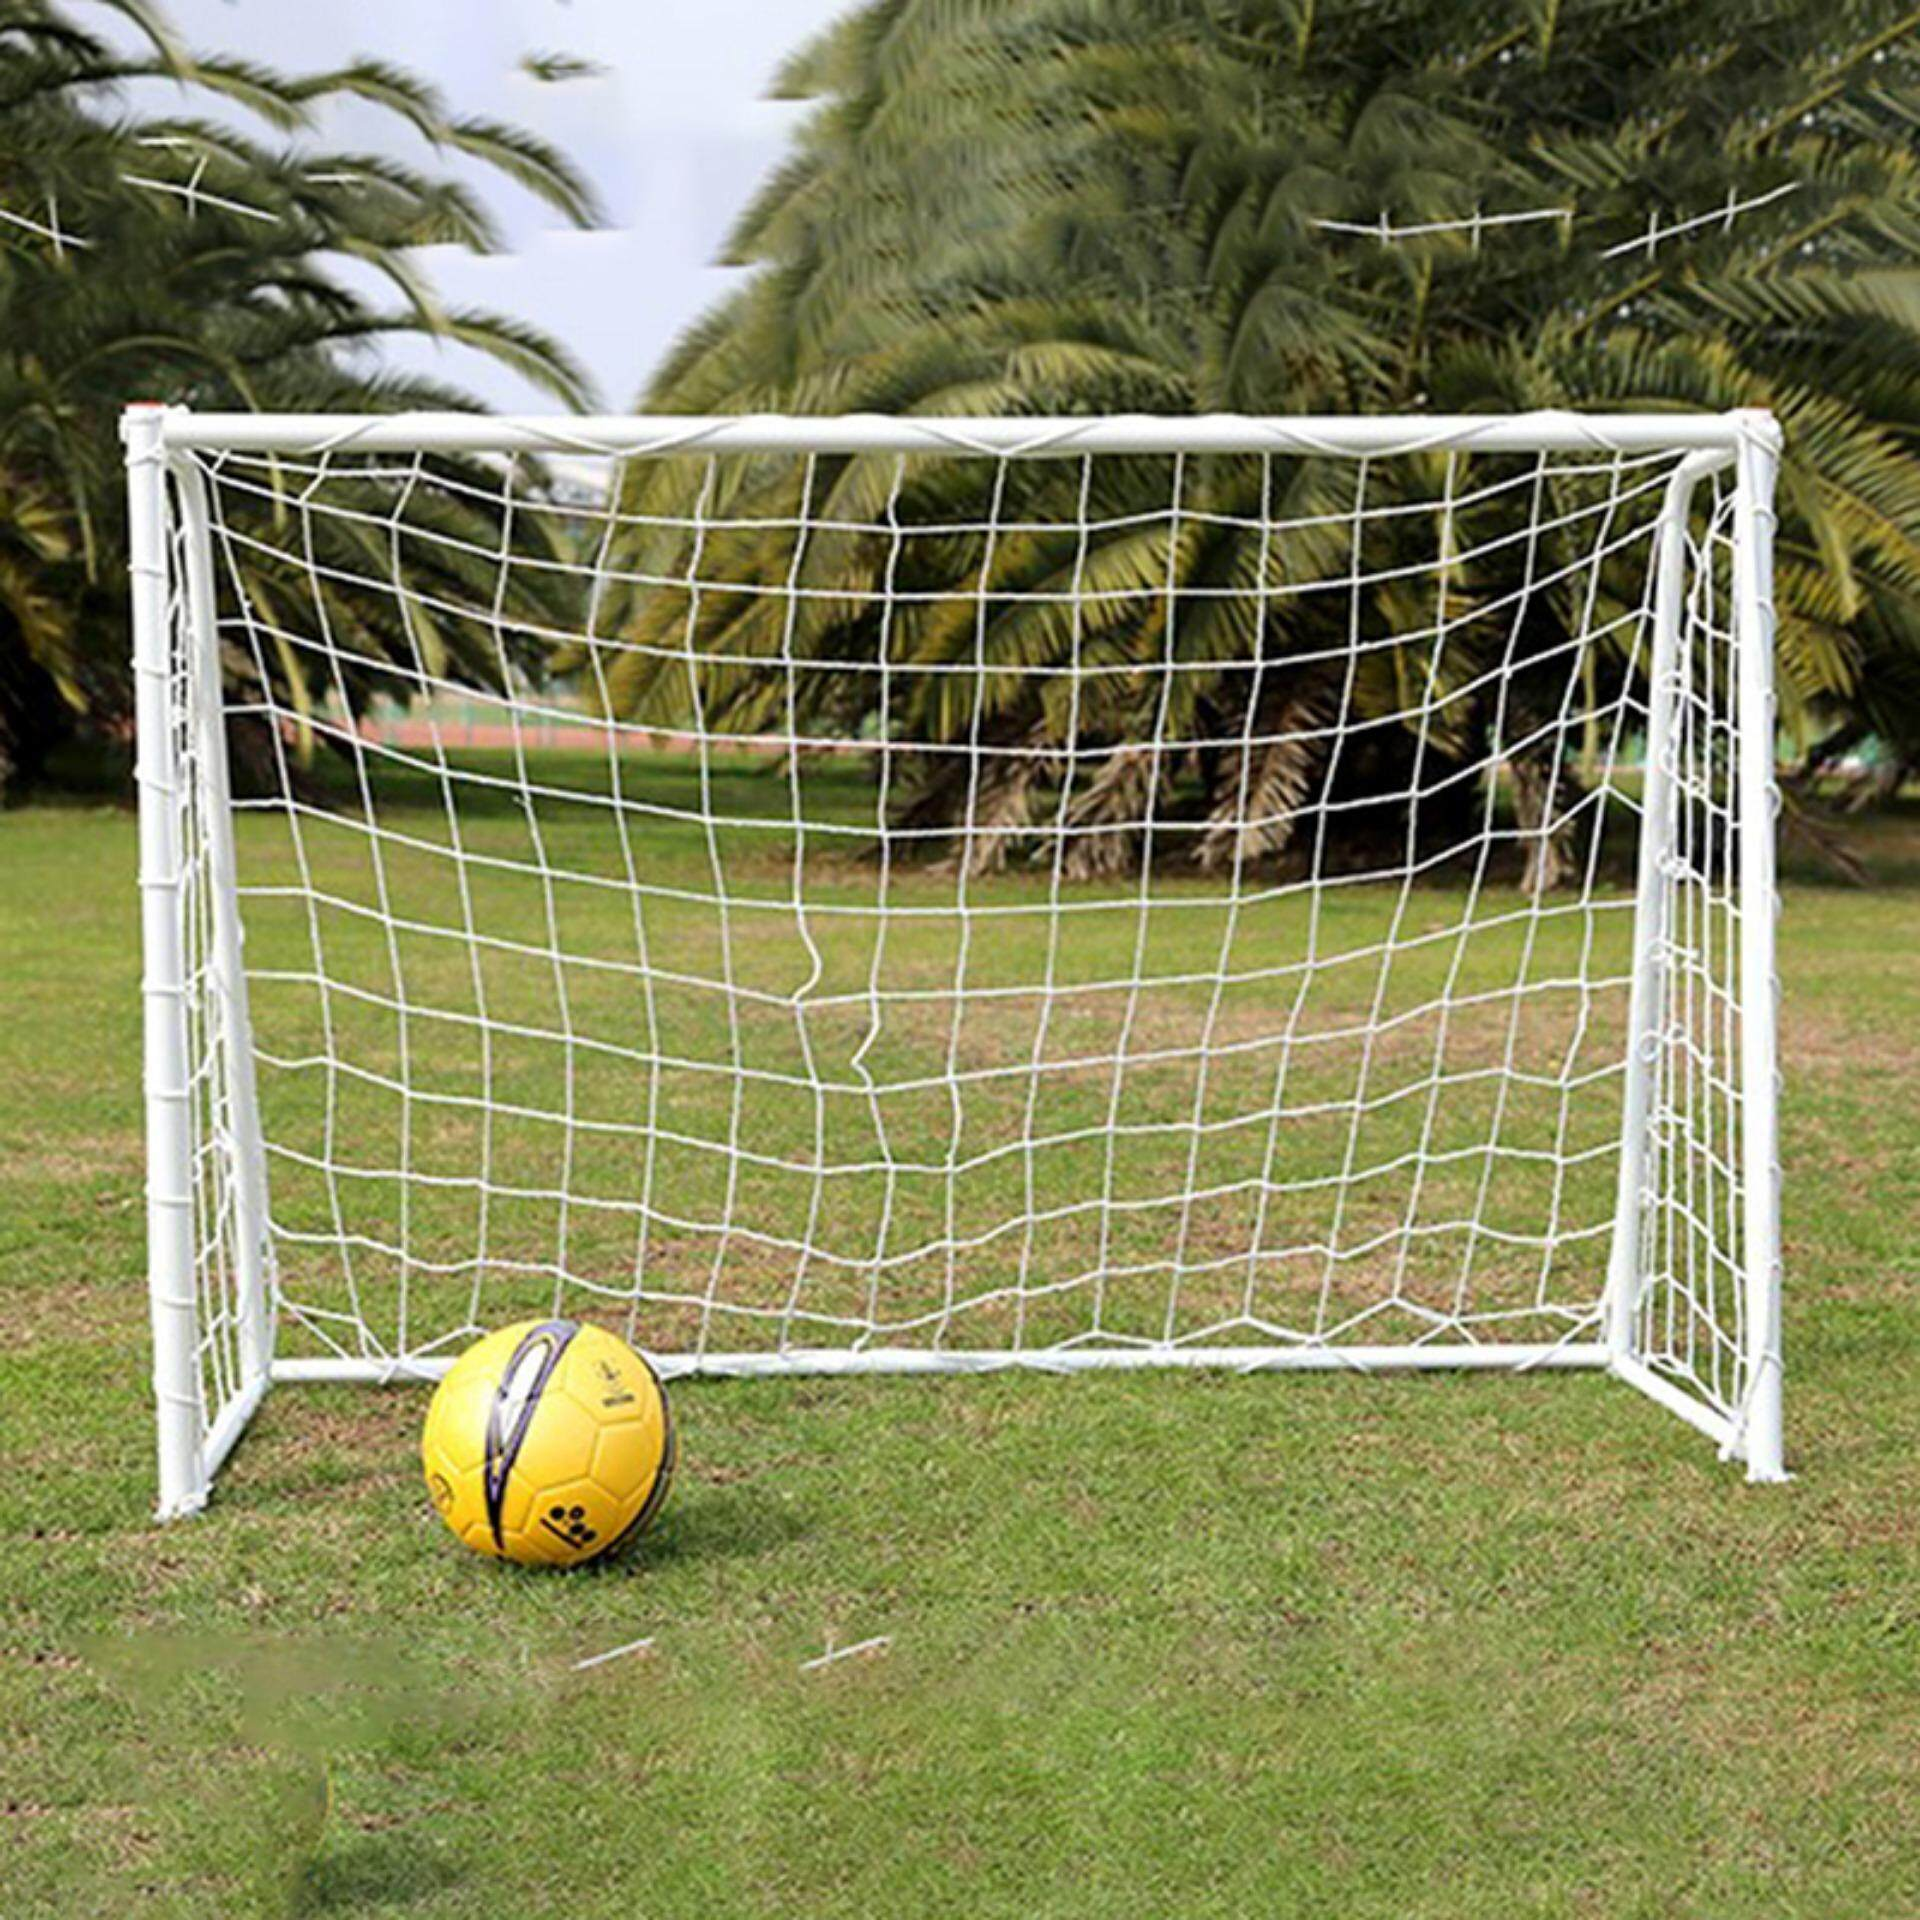 Soccer Goals For Sale >> Soccer Goals For Sale Soccer Net Online Brands Prices Reviews